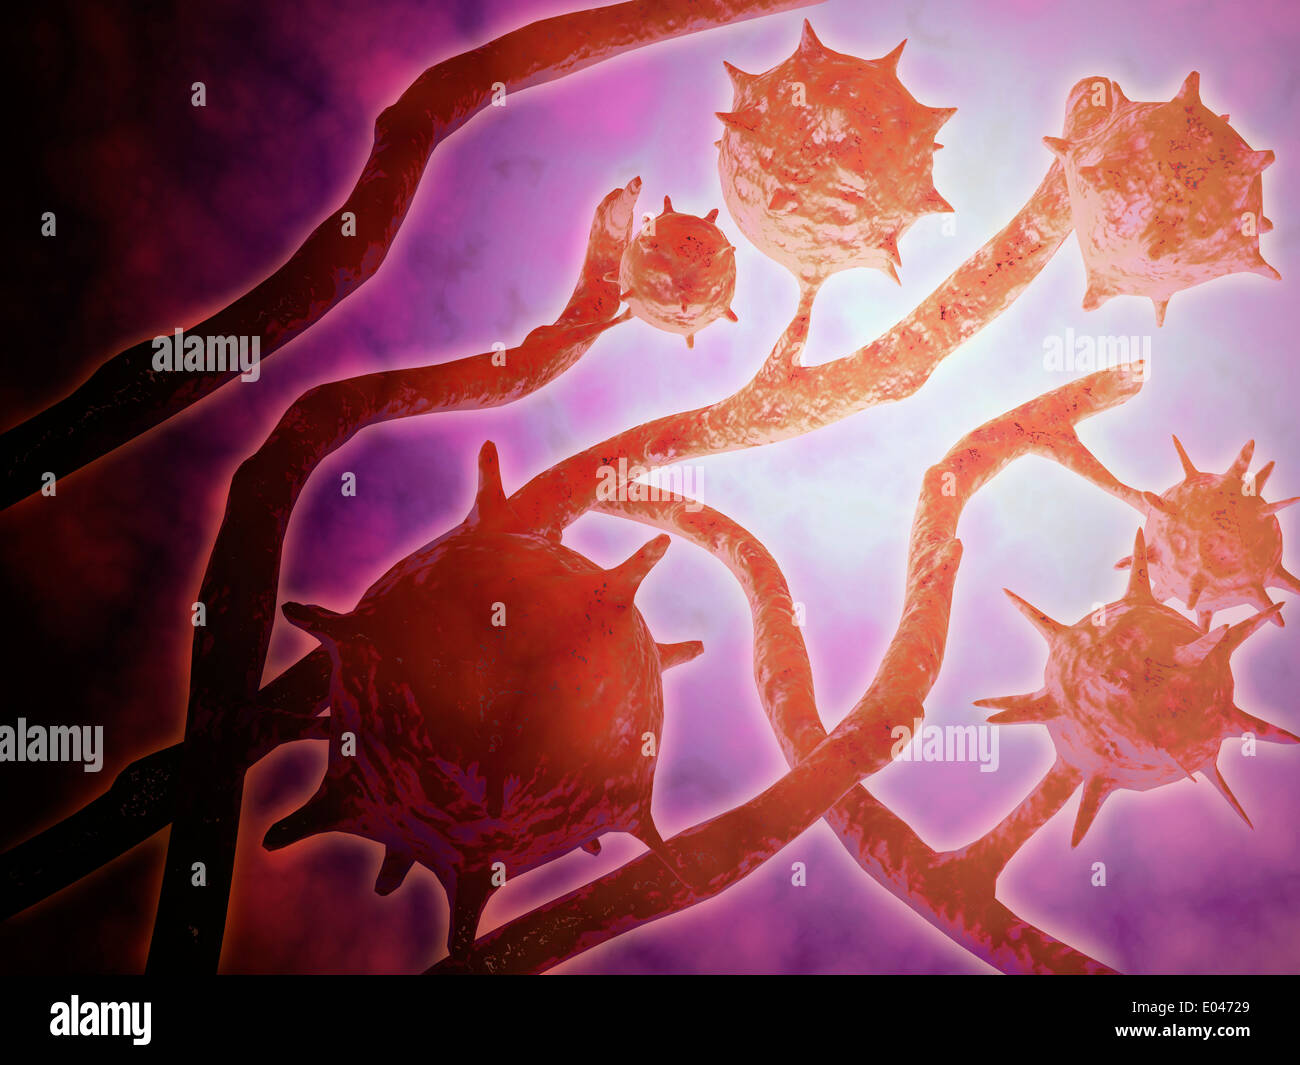 Microscopic view of histoplasmosis. - Stock Image